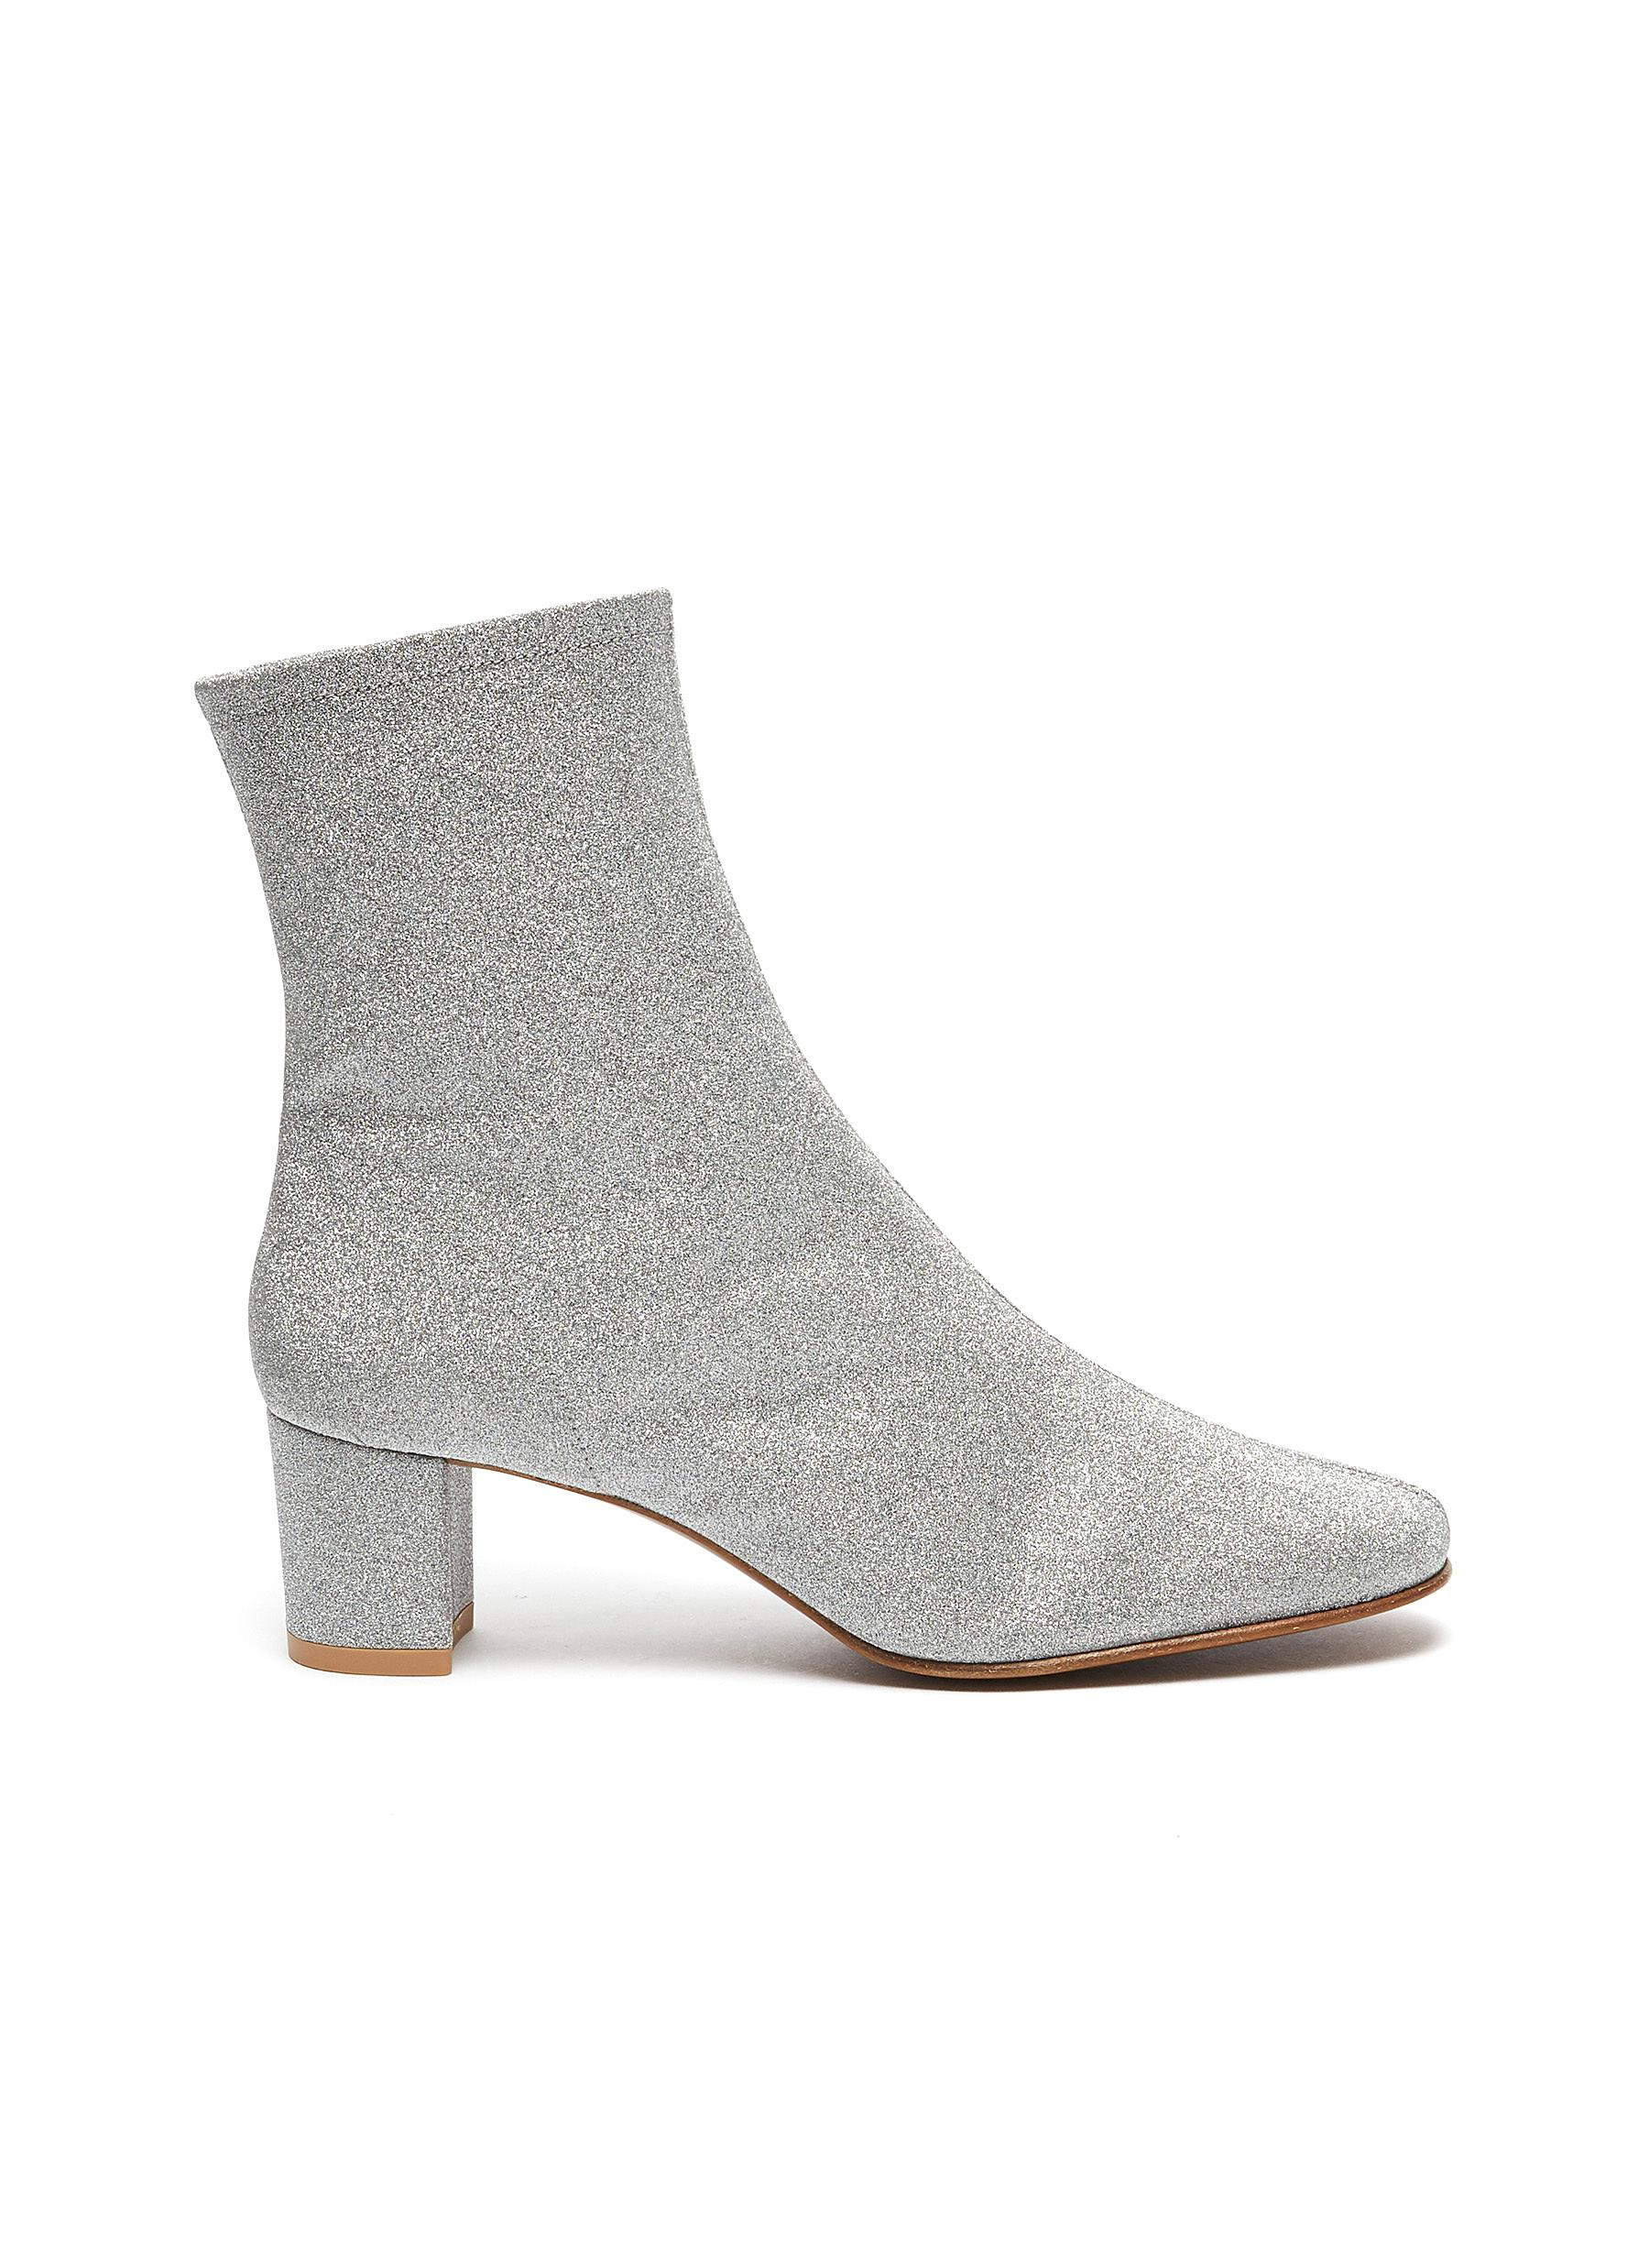 Sofia glitter leather ankle boots by By Far